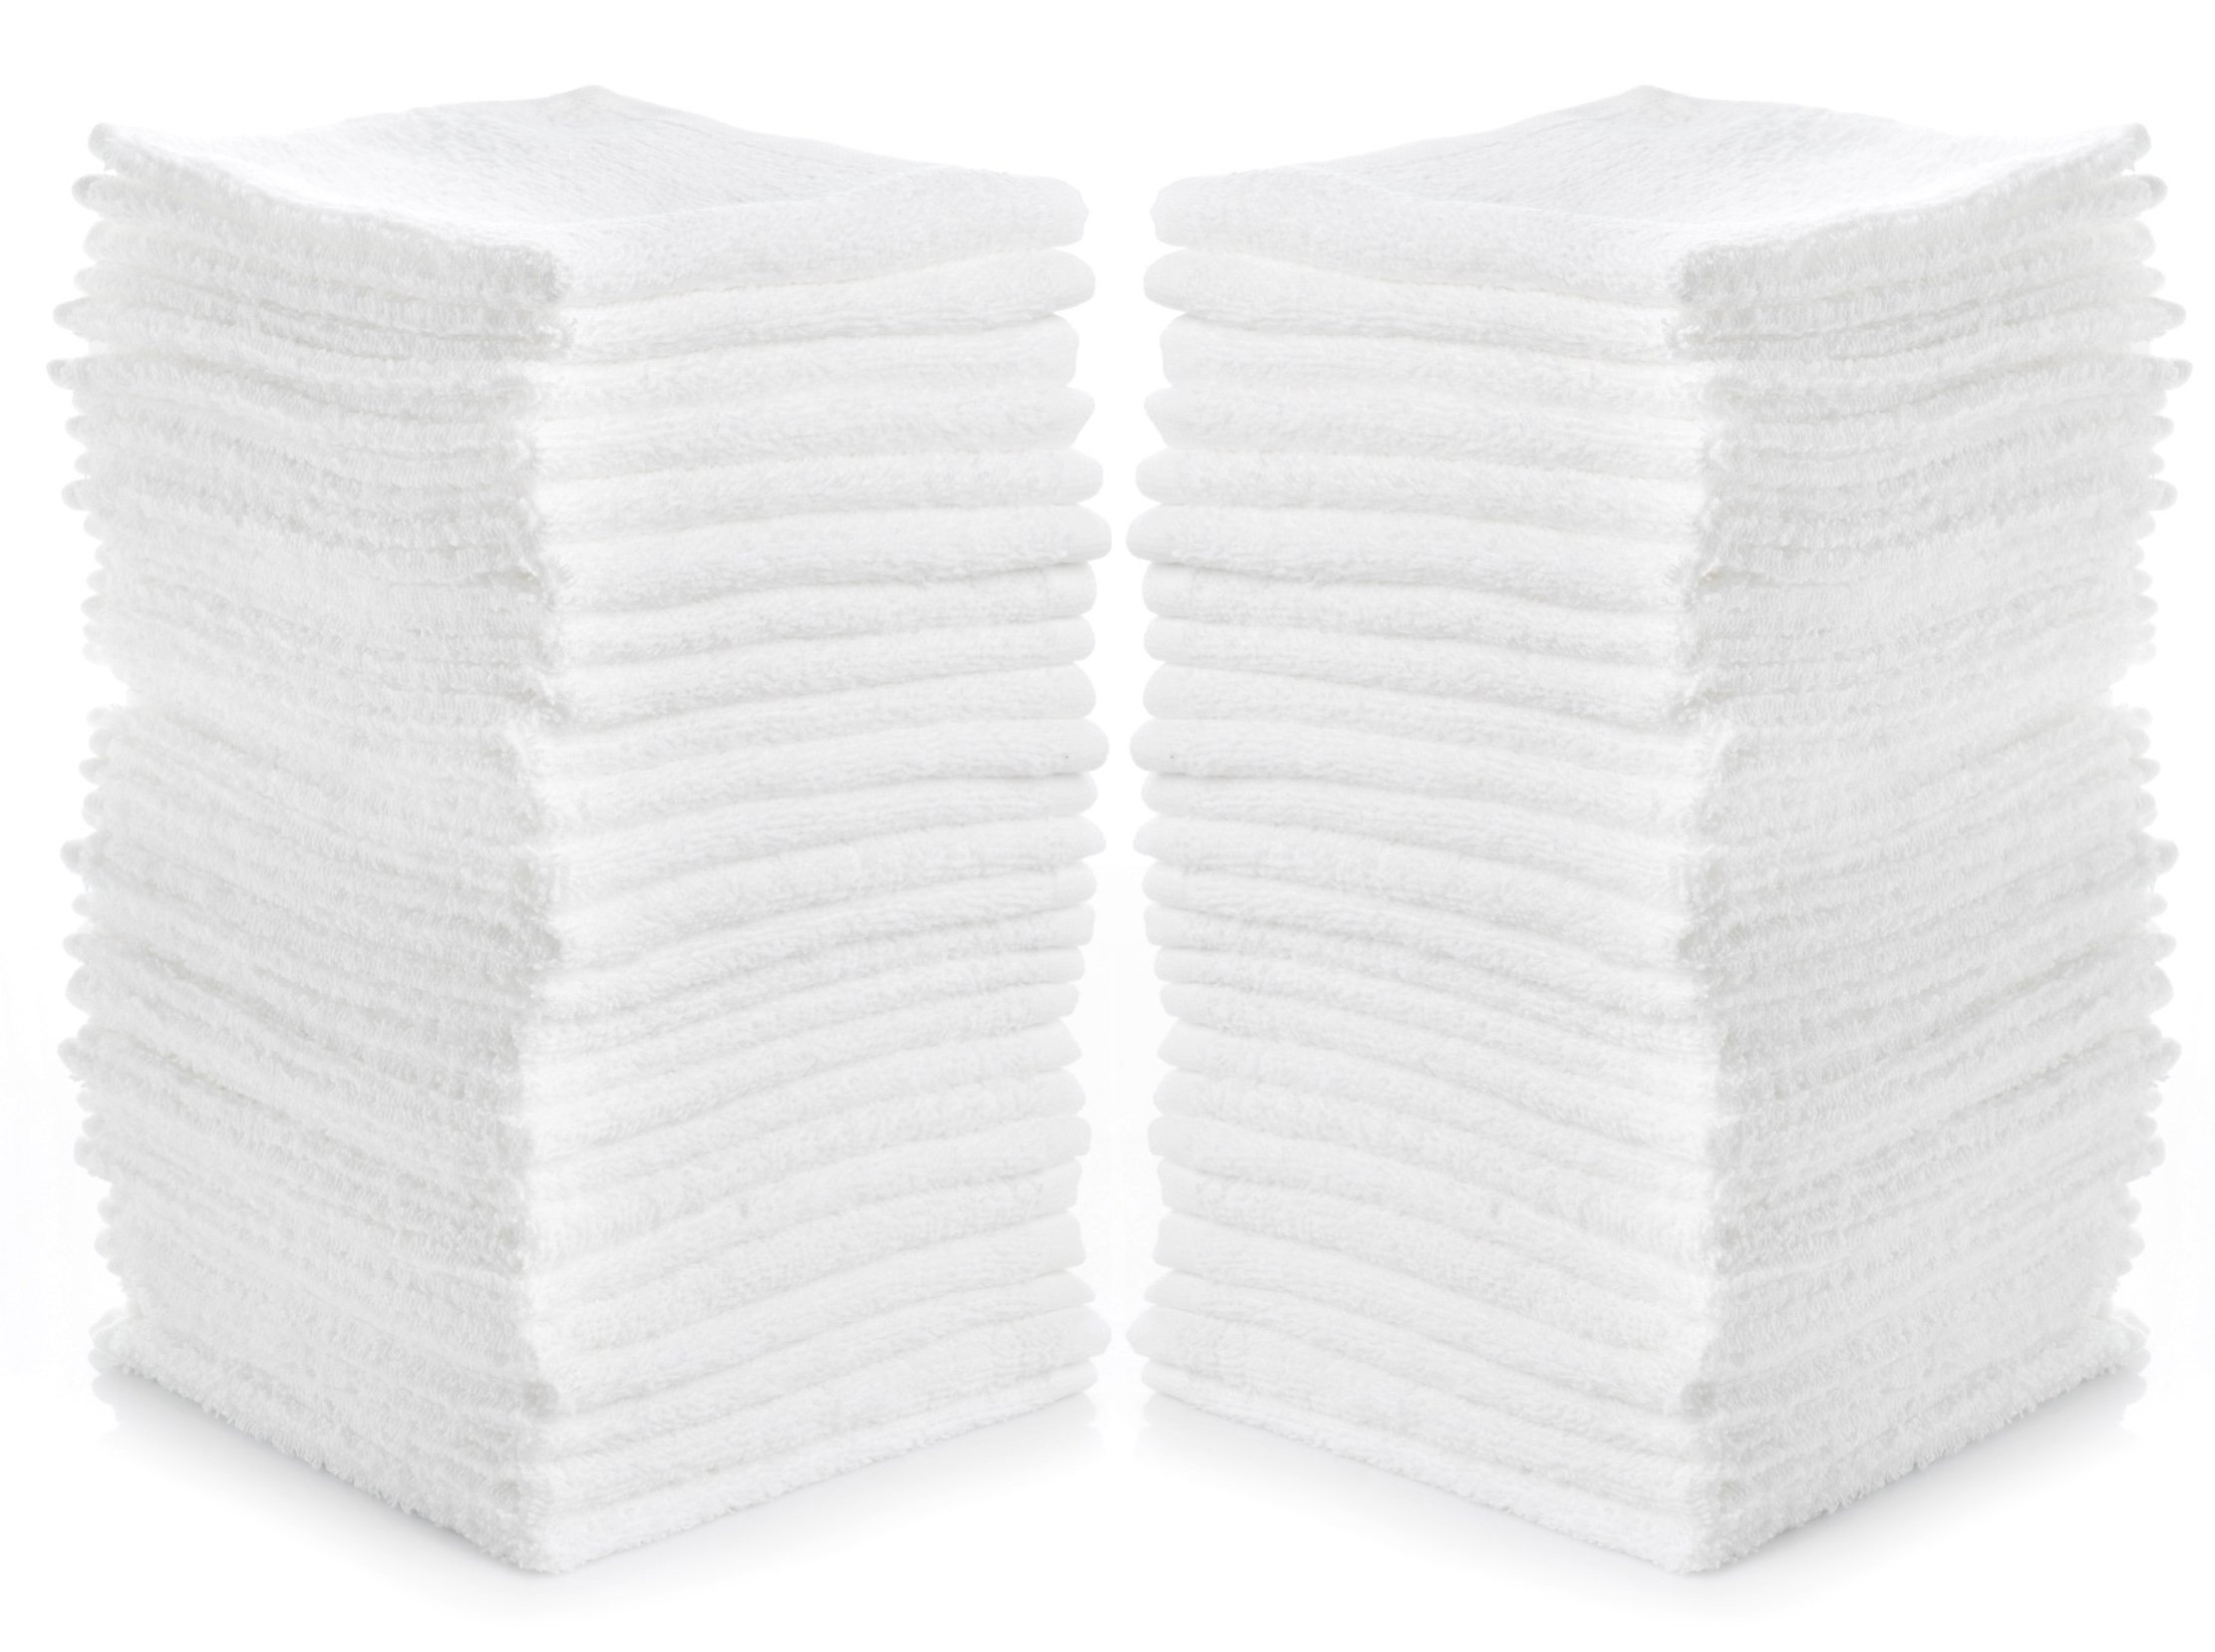 Cleaning Solutions 79078 Cotton Washcloths, 12'' x 12'', White (Pack of 24), 24-Pack